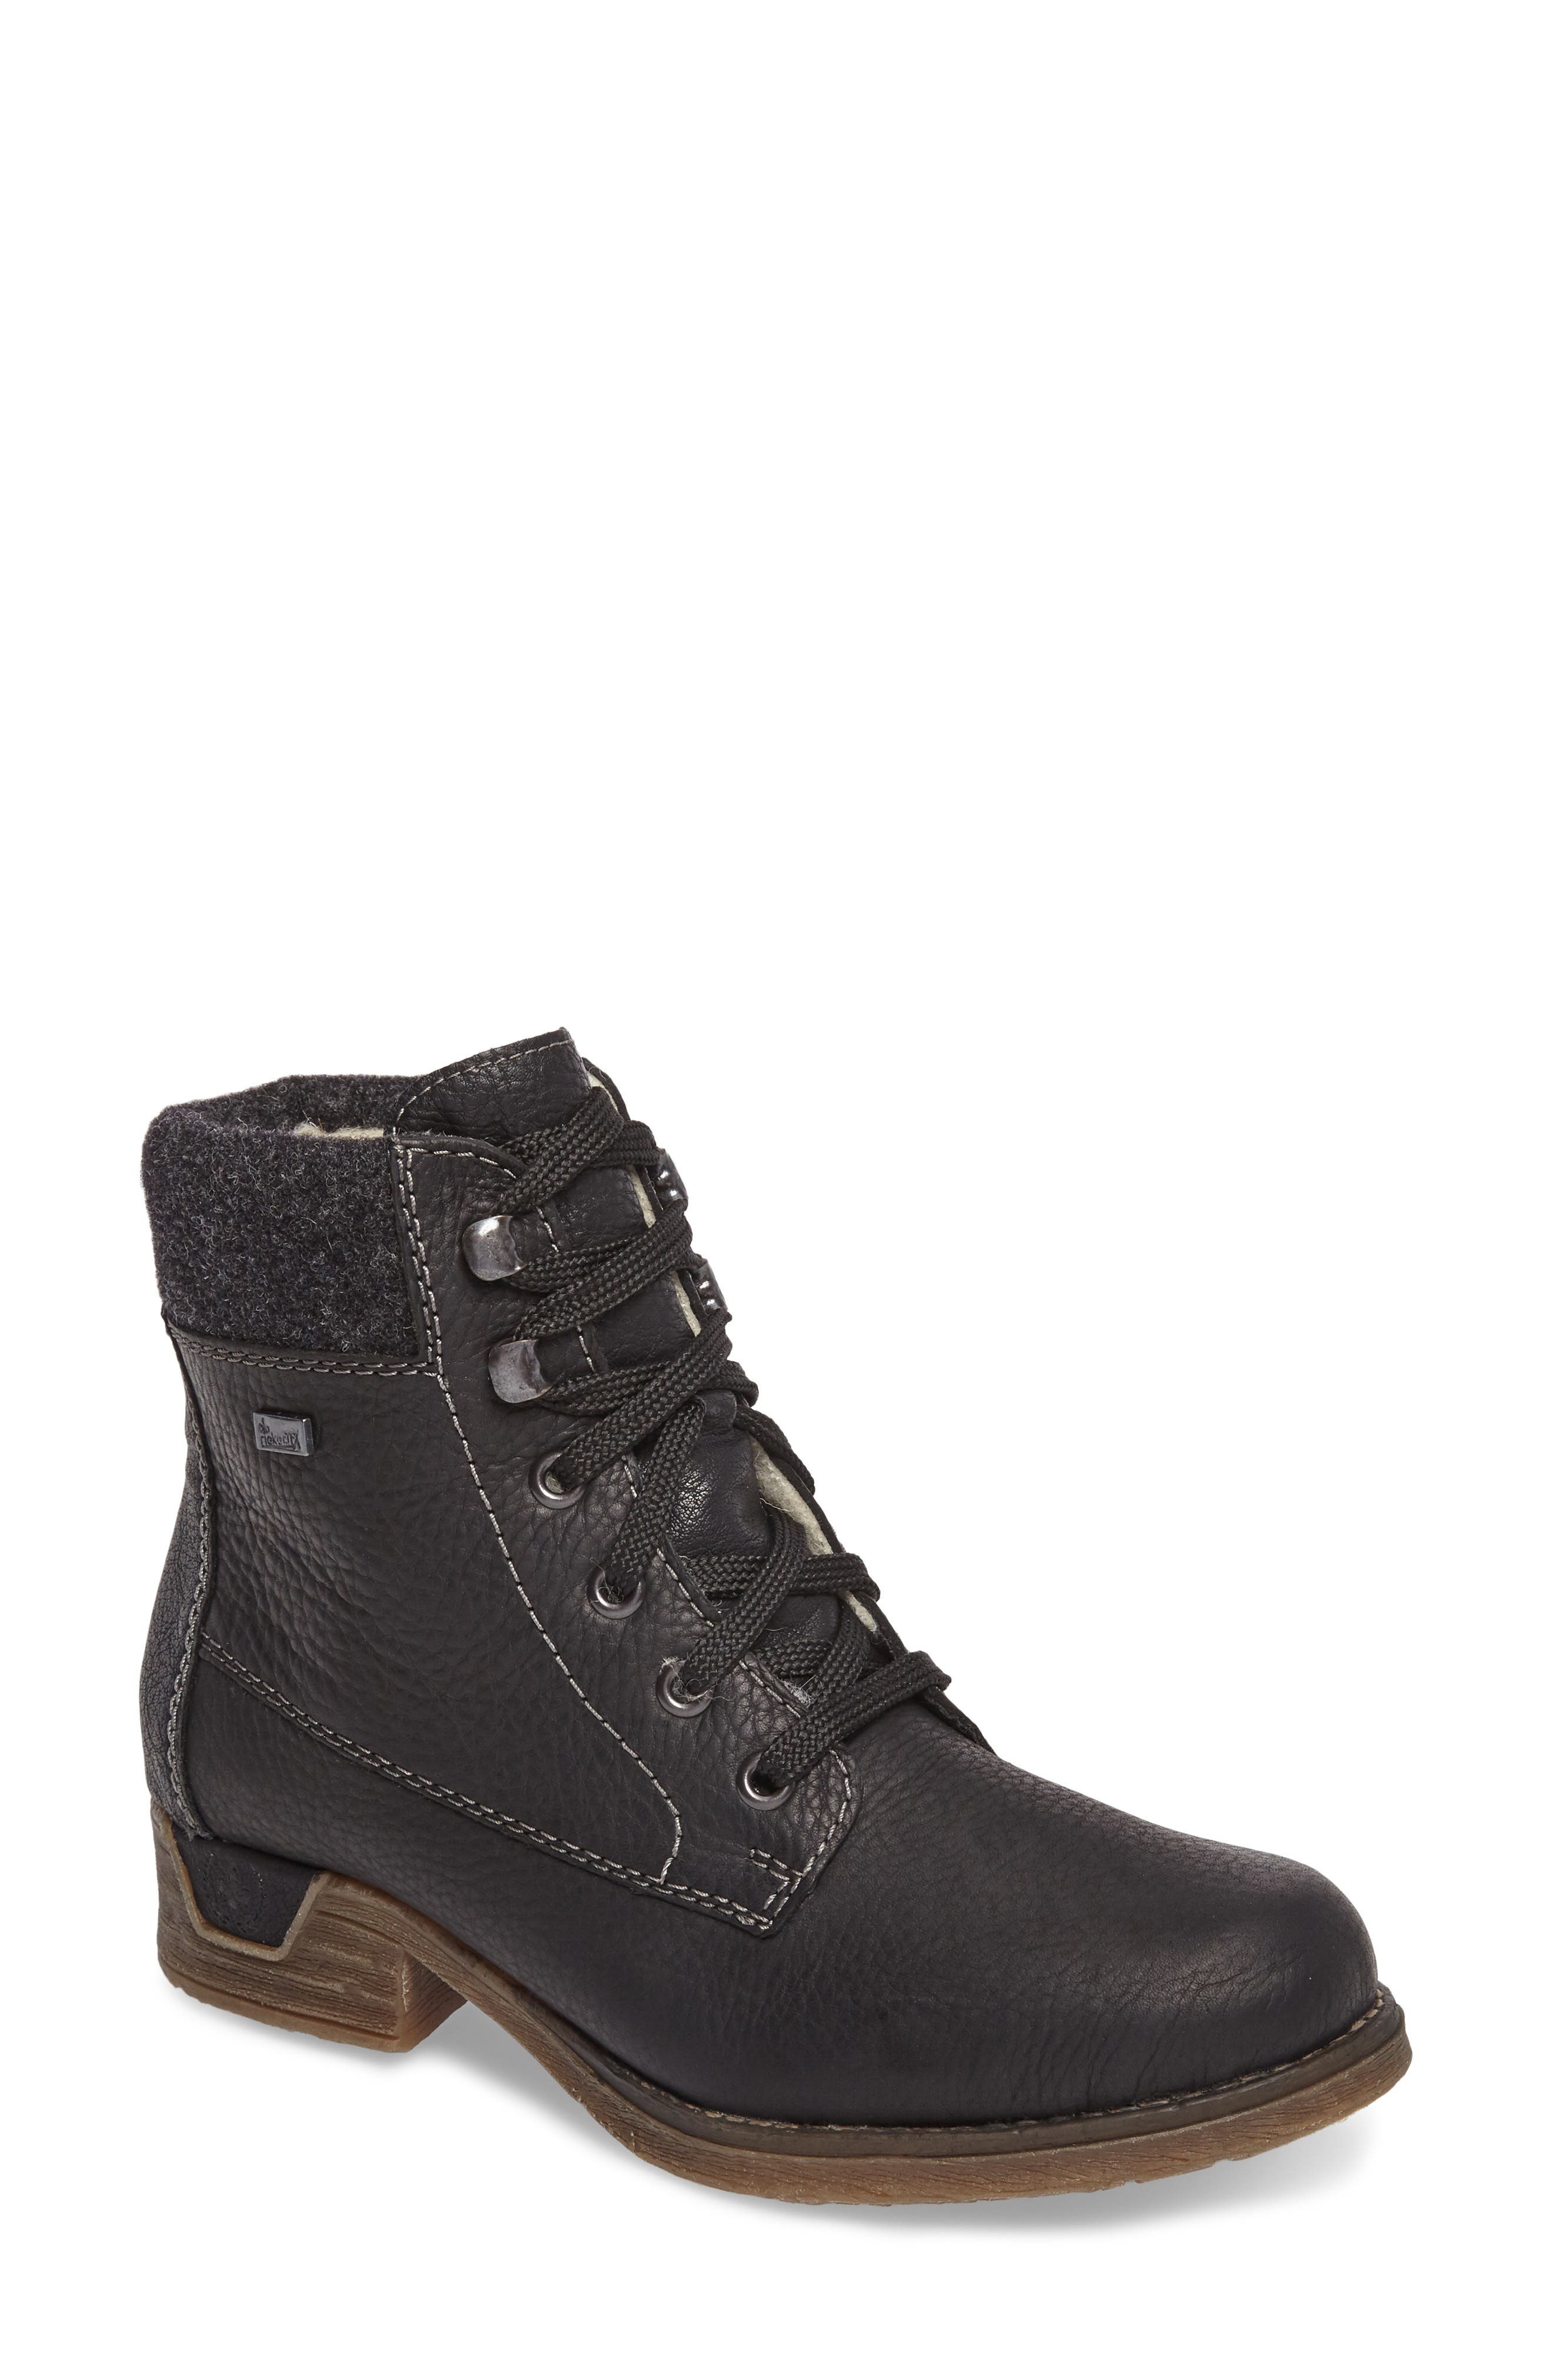 Fee 02 Lace-Up Boot,                             Main thumbnail 1, color,                             SCHWARZ ANTRACHITE LEATHER